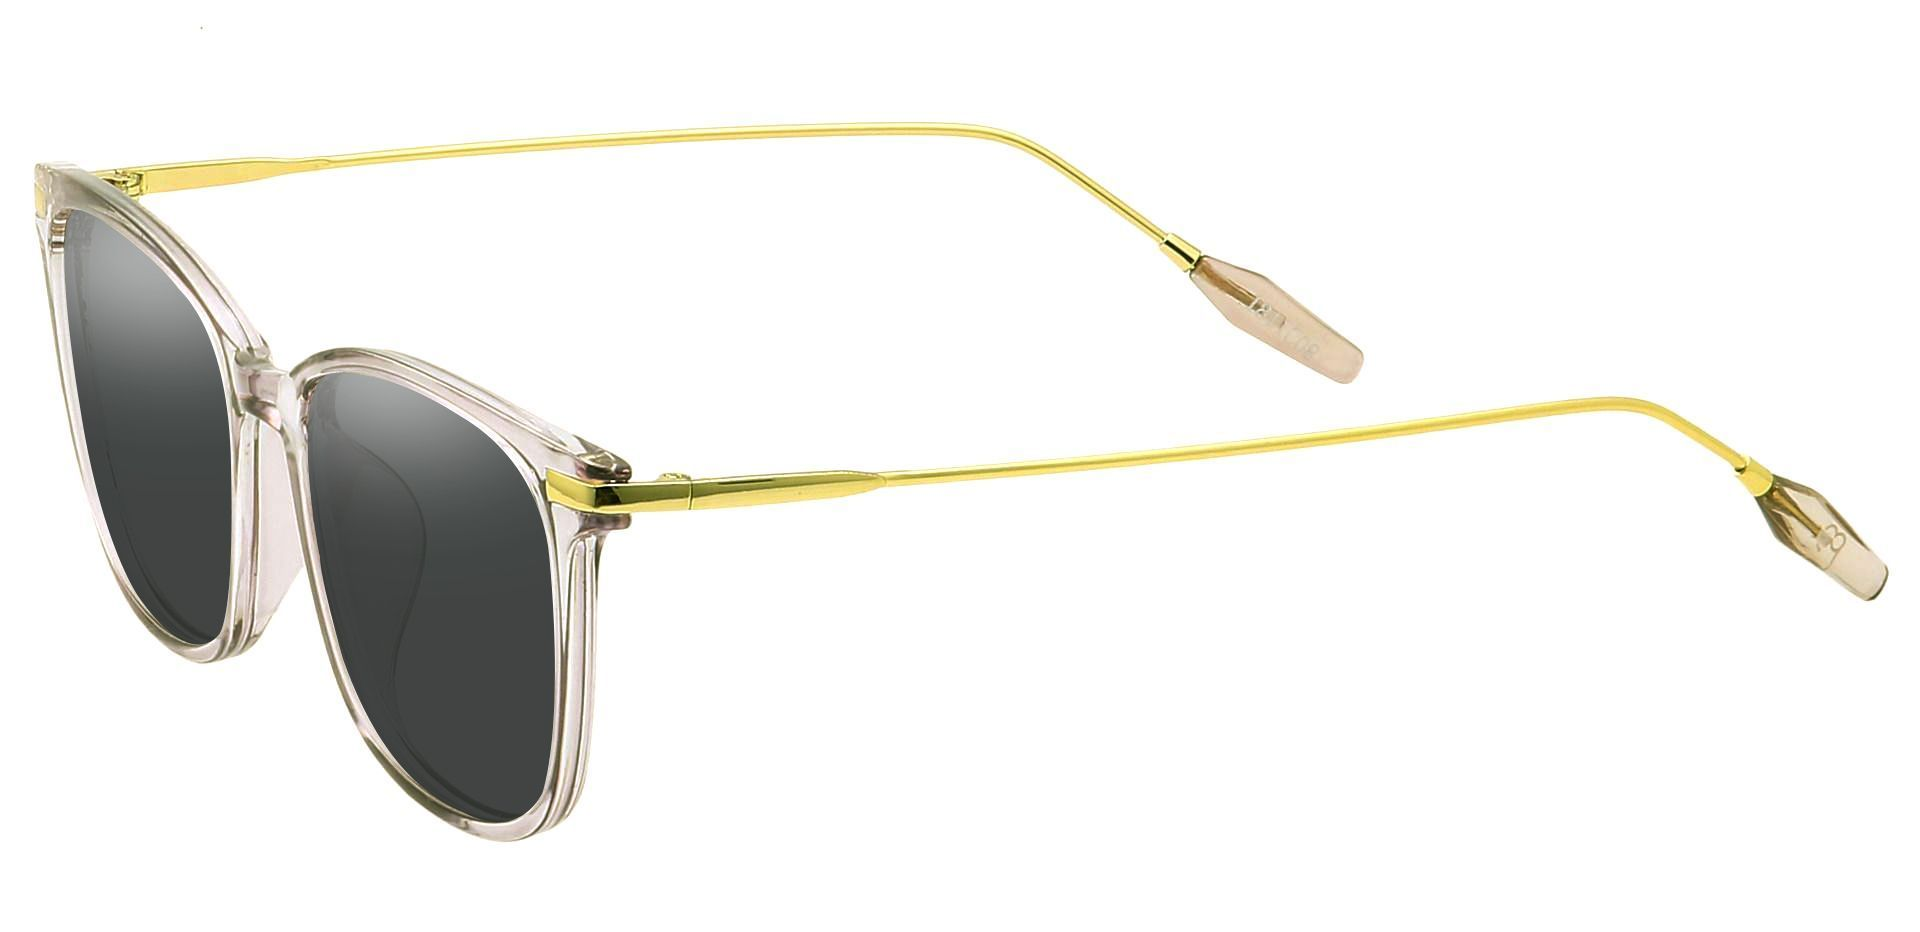 Katie Oval Prescription Sunglasses - Clear Frame With Gray Lenses